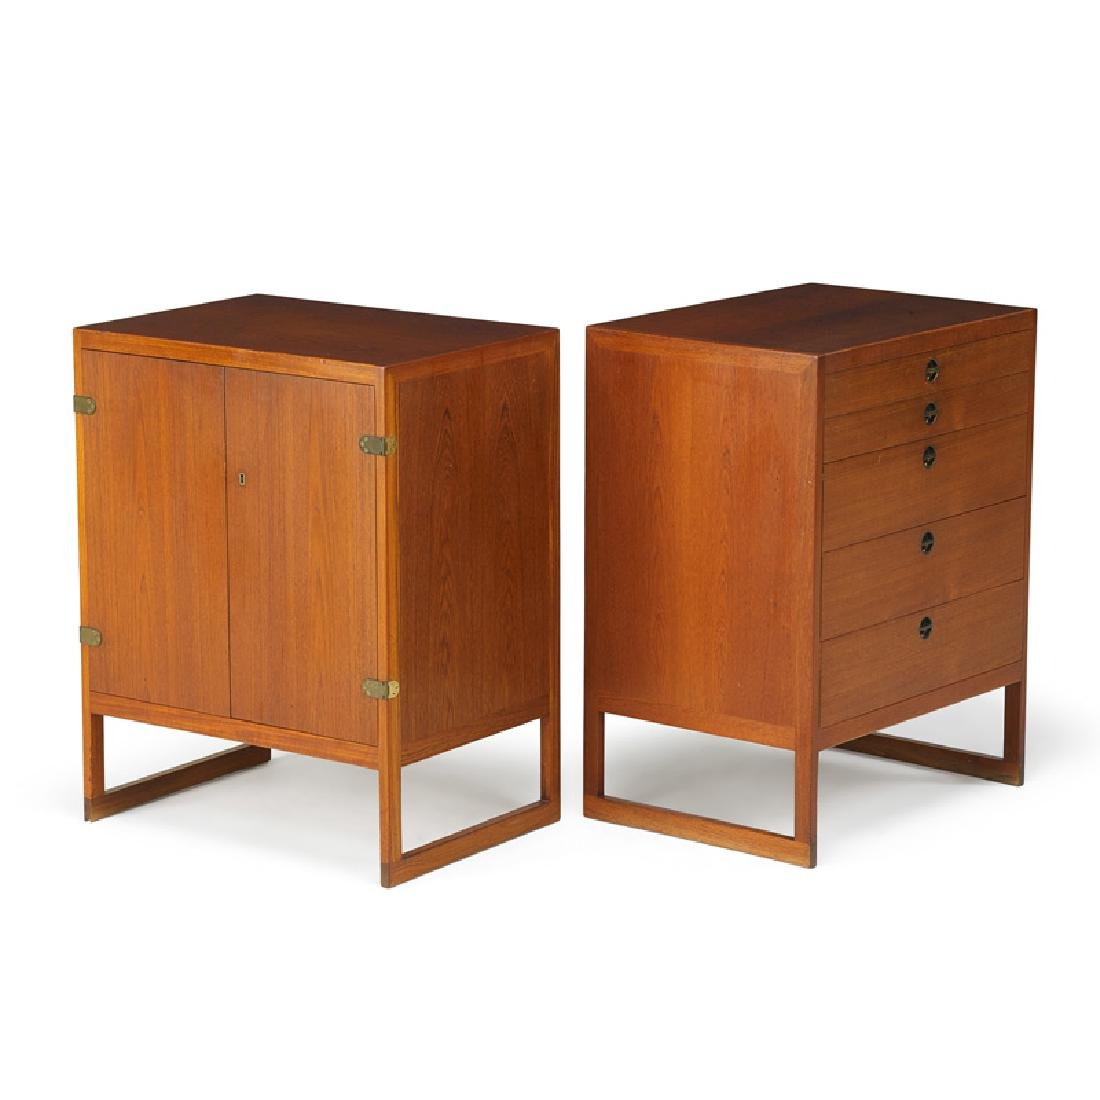 BORGE MOGENSEN Pair of cabinets